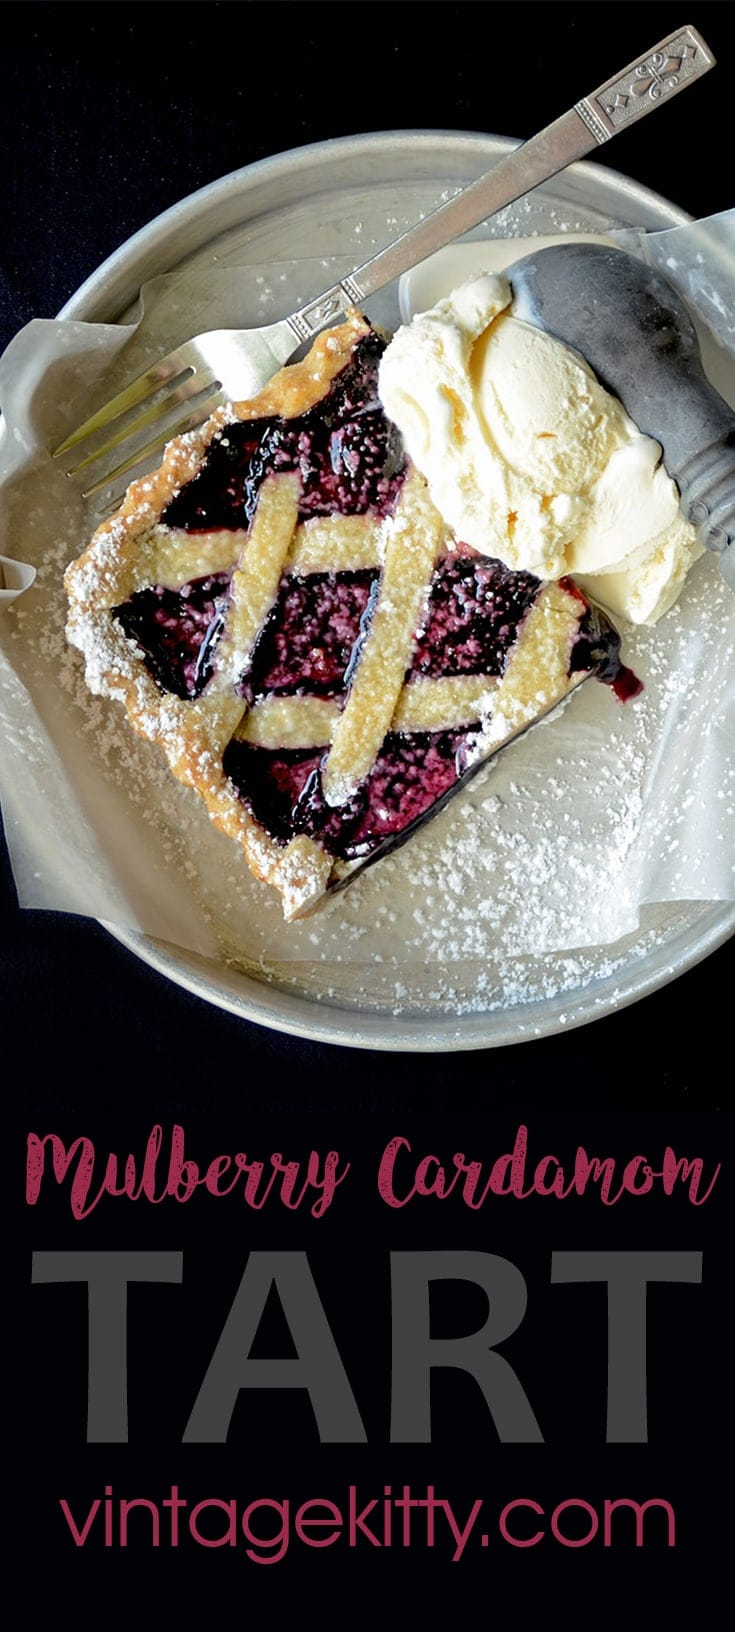 Inspired by classic linzer torte, this Mulberry Tart evokes the simplicity of days gone by. It's fruity, sweet, buttery and heaven with vanilla ice cream. #mulberry #mulberries Tart #dessert #cardamom